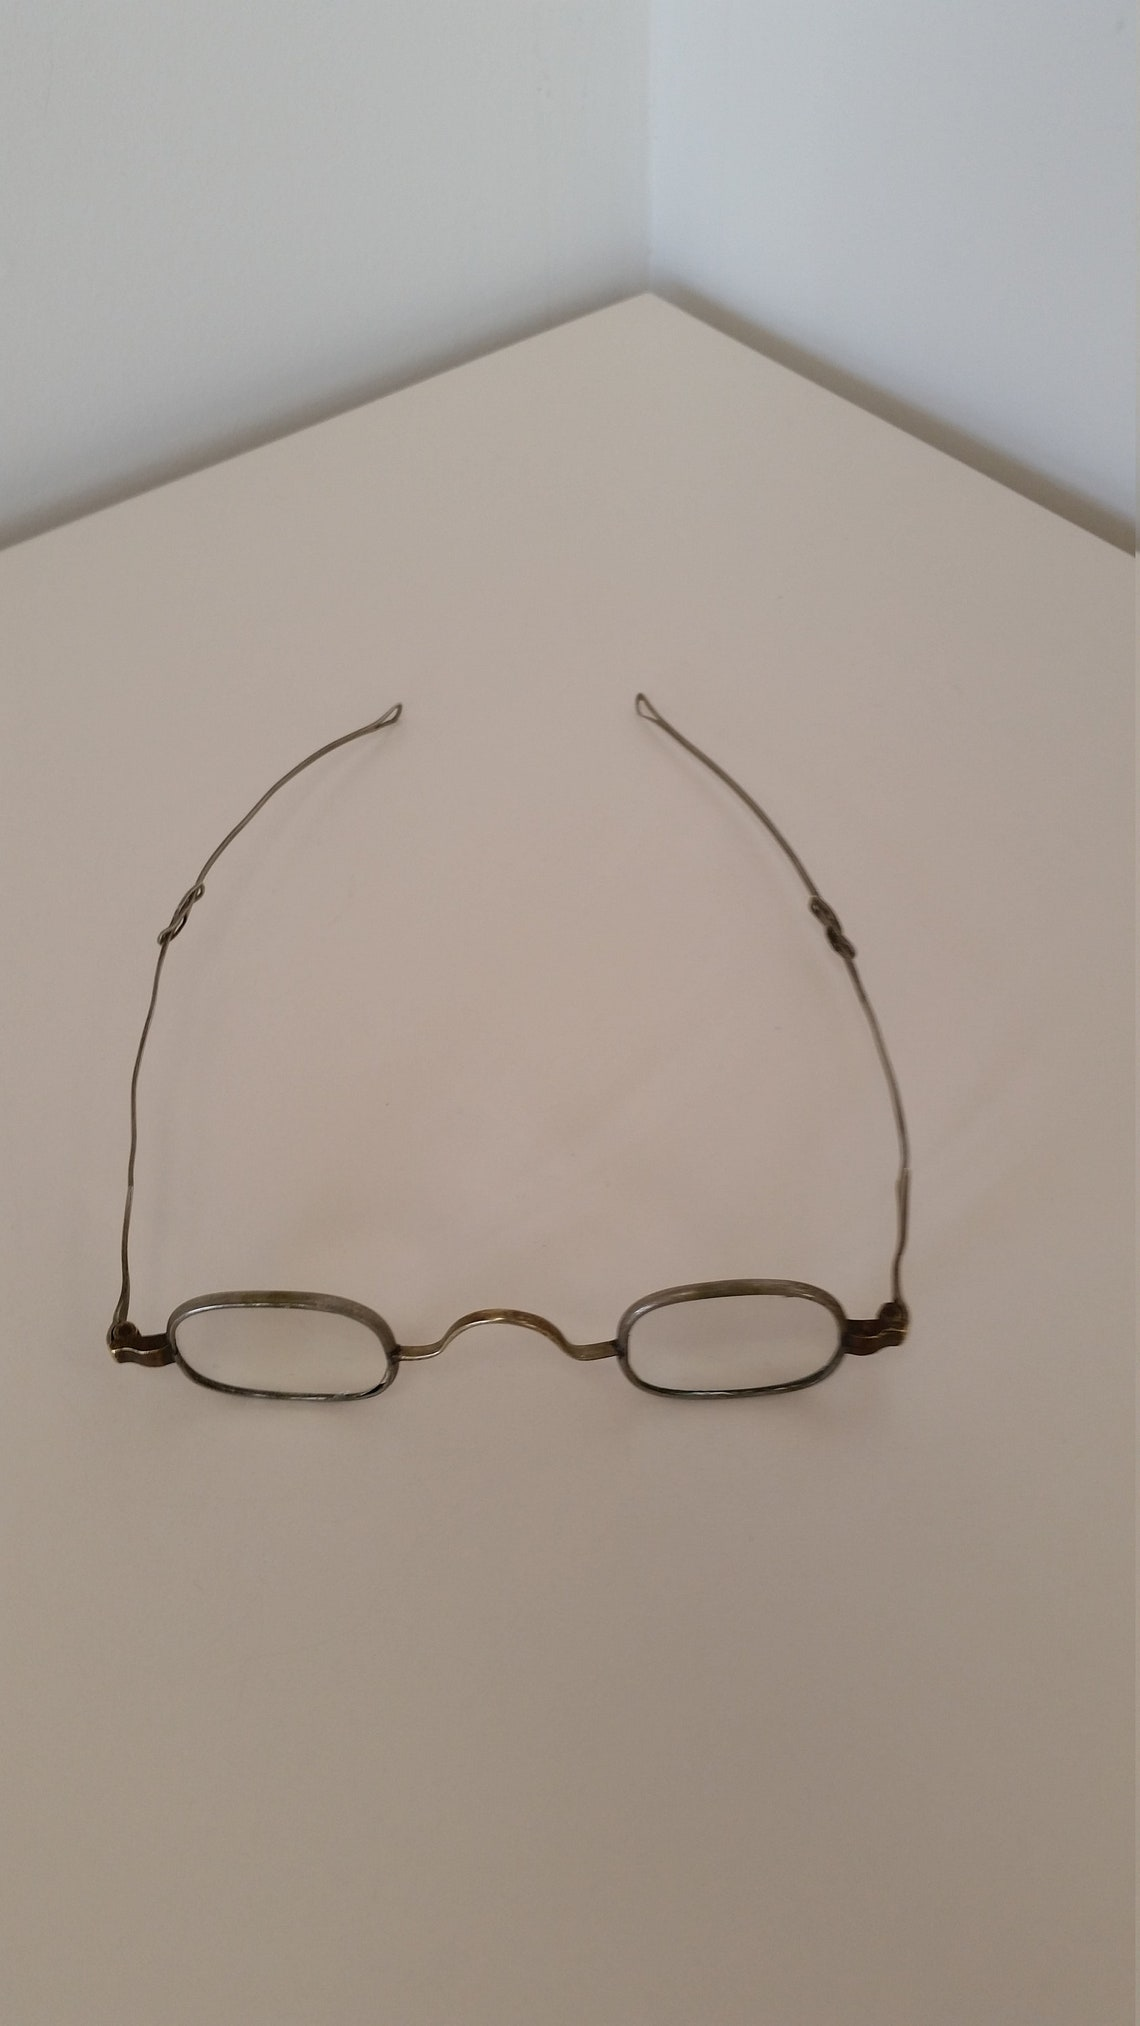 1800s Eyeglasses; Strong +6.75 Strength; Sliding Temples; Ready to Wear - Reenacting Living History; Excellent Antique Condition